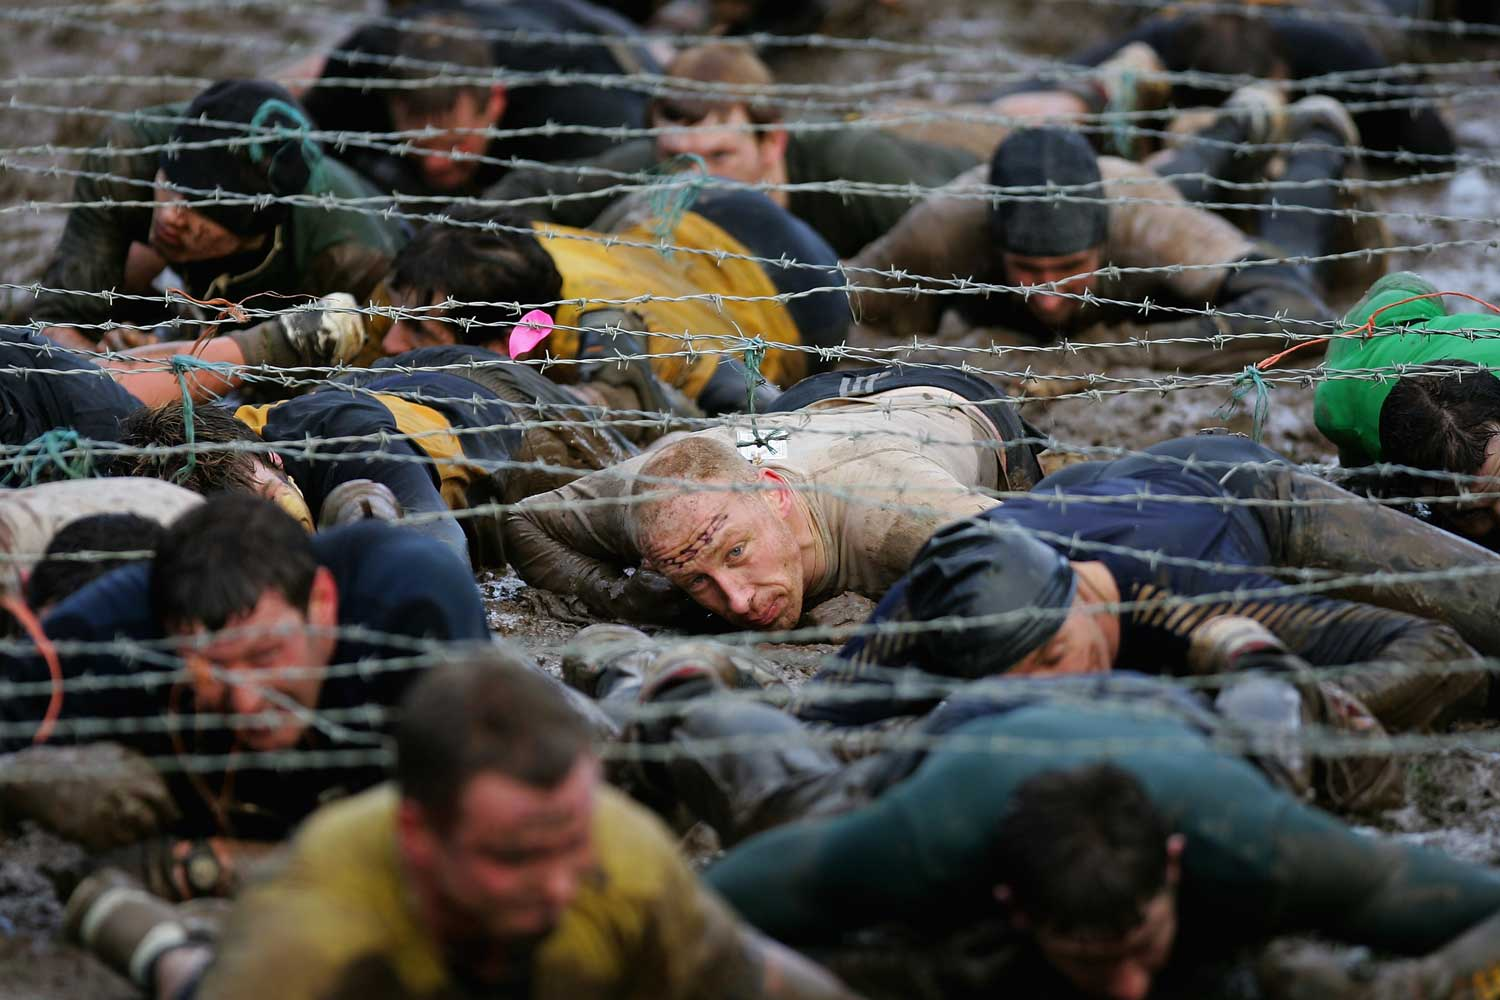 The annual Tough Guy Challenge at the South Perton Farm in Wolverhampton, England.